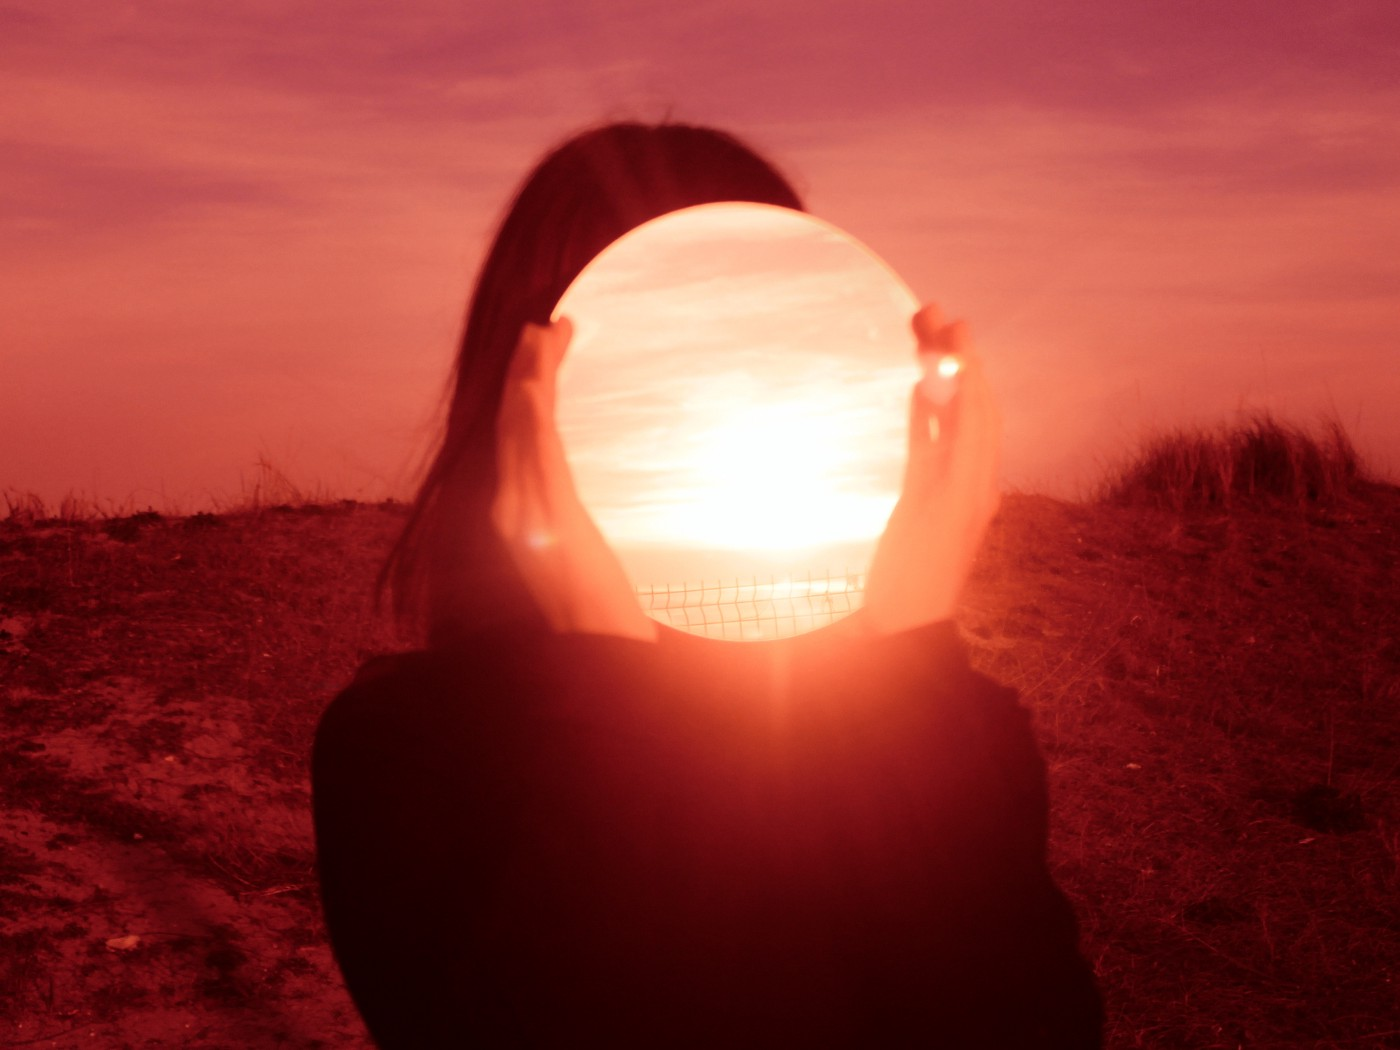 A woman holds a mirror over her face that reflects the bright light of the vivid red sunset.